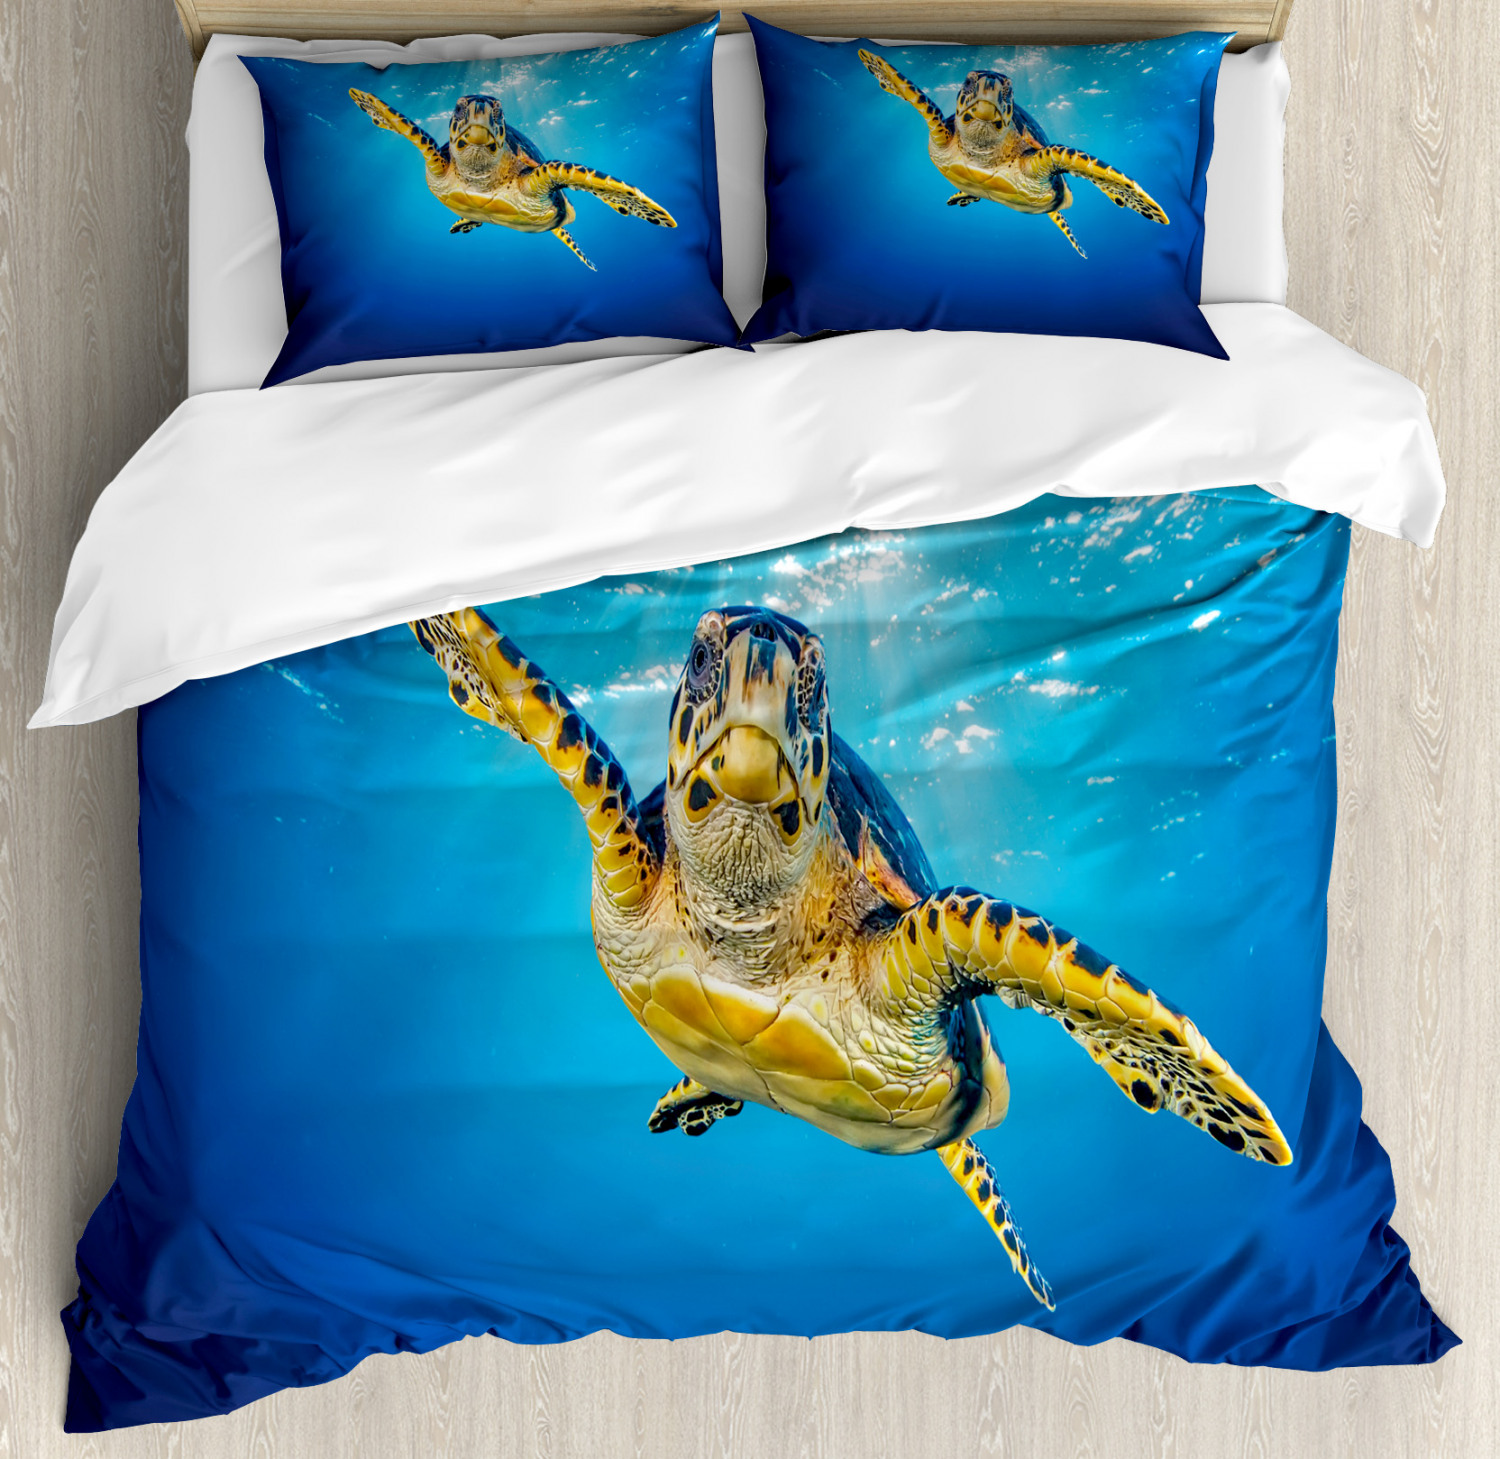 Turtle Duvet Cover Set with Pillow Shams bluee Waters Swimming Print